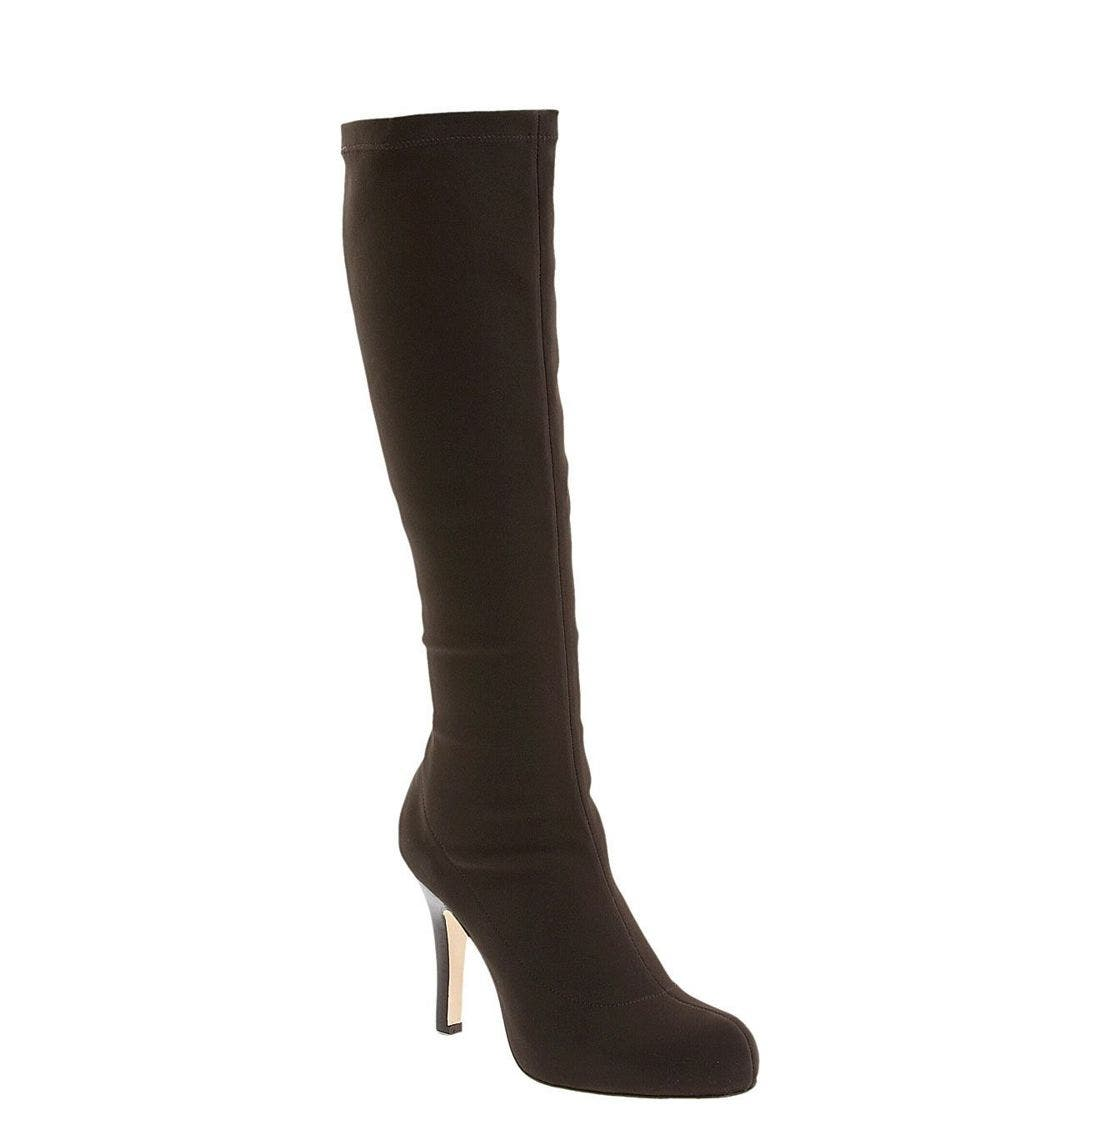 Alternate Image 1 Selected - Martinez Valero 'Dare' Tall Stretch Boot